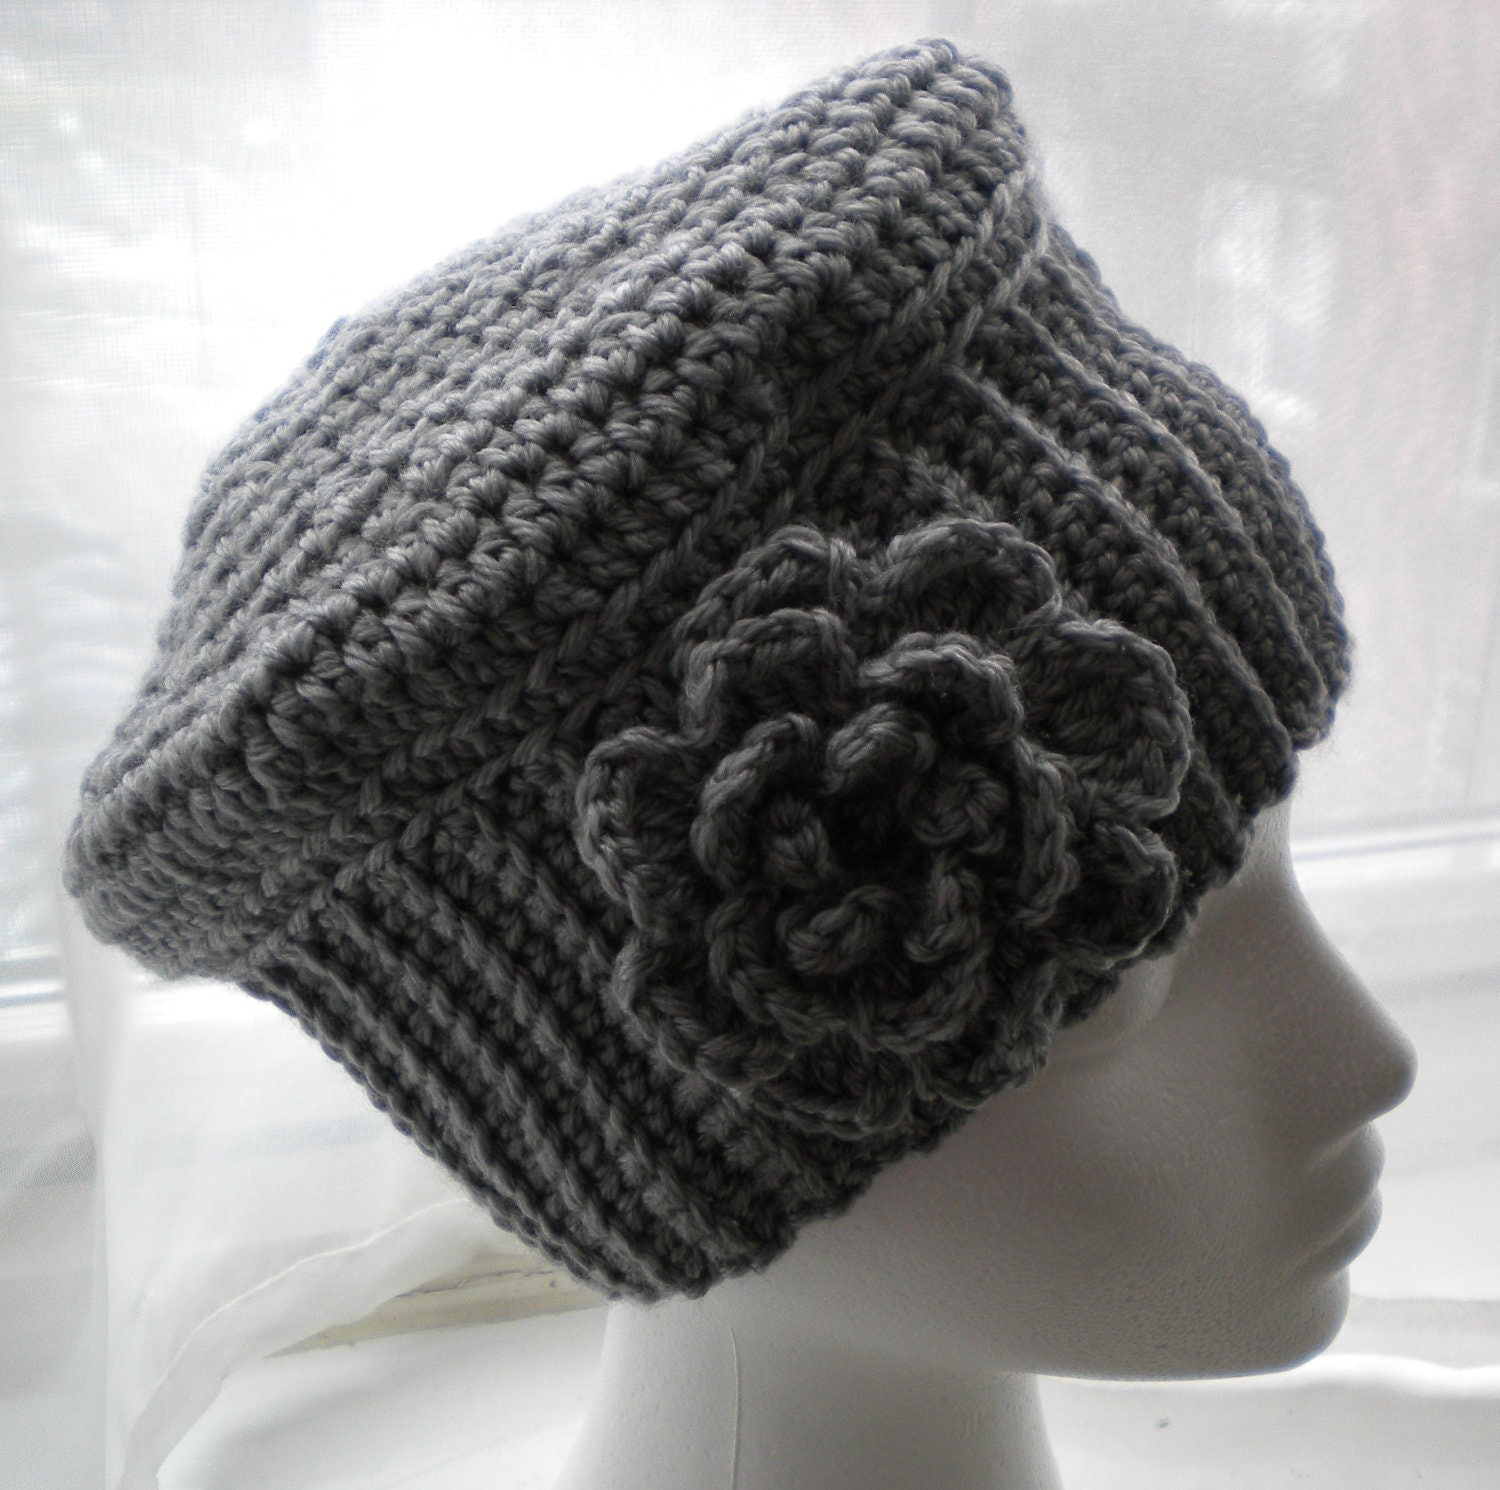 Crochet Flower For Hat : CROCHET HAT PATTERN - Cloche Hat with Flower